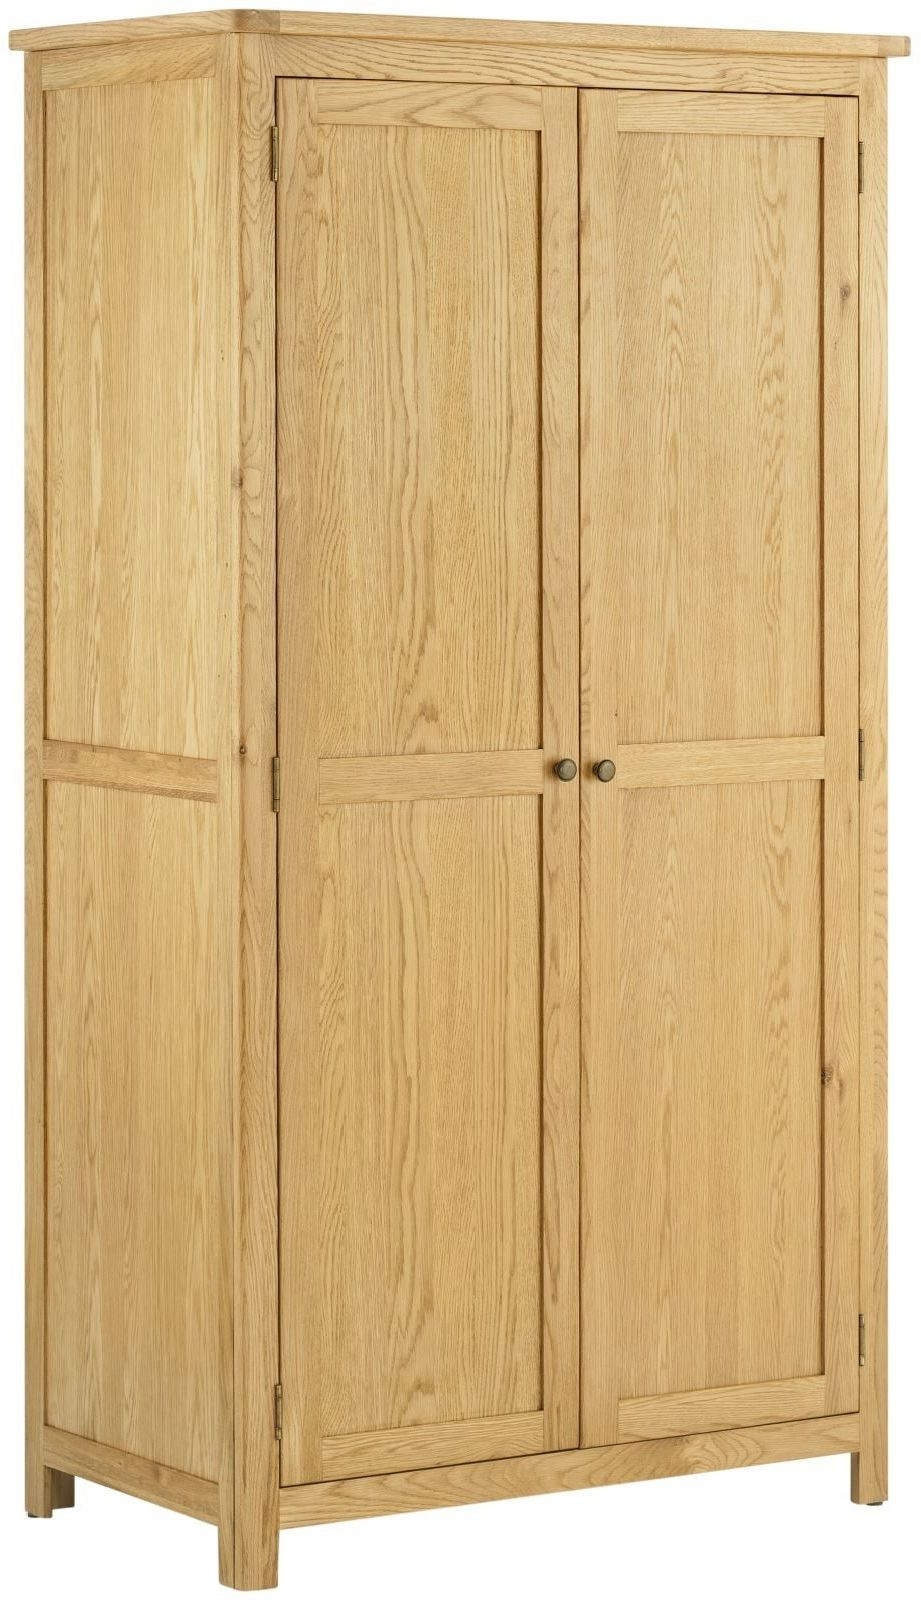 Stratton Oak Wardrobe 2 doors